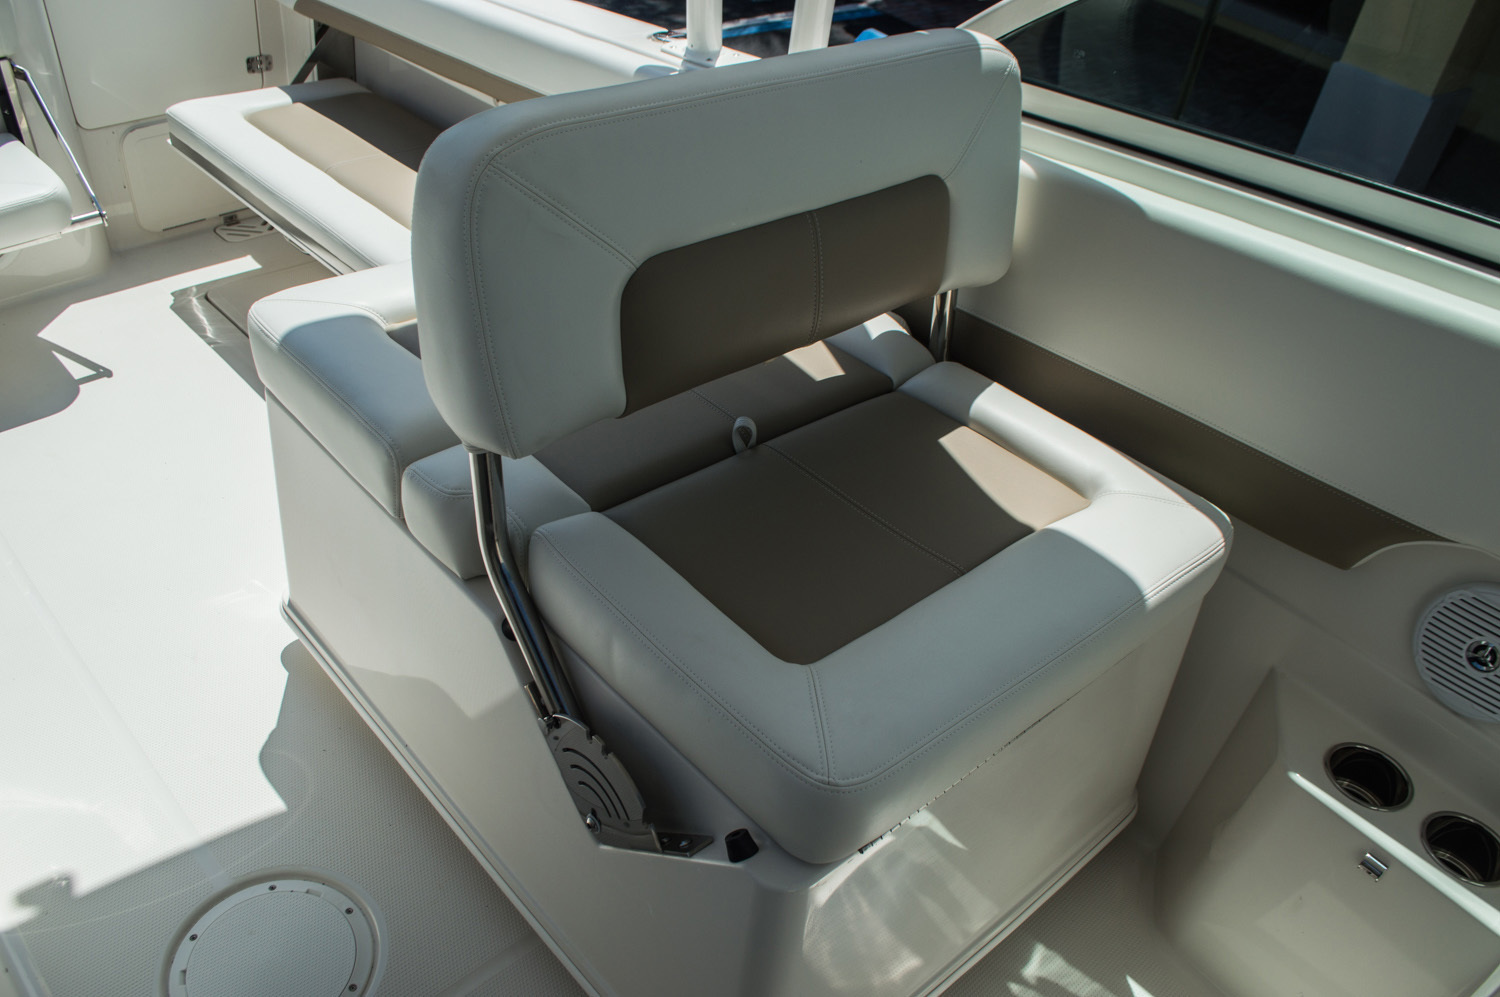 Thumbnail 41 for New 2016 Sailfish 275 Dual Console boat for sale in West Palm Beach, FL